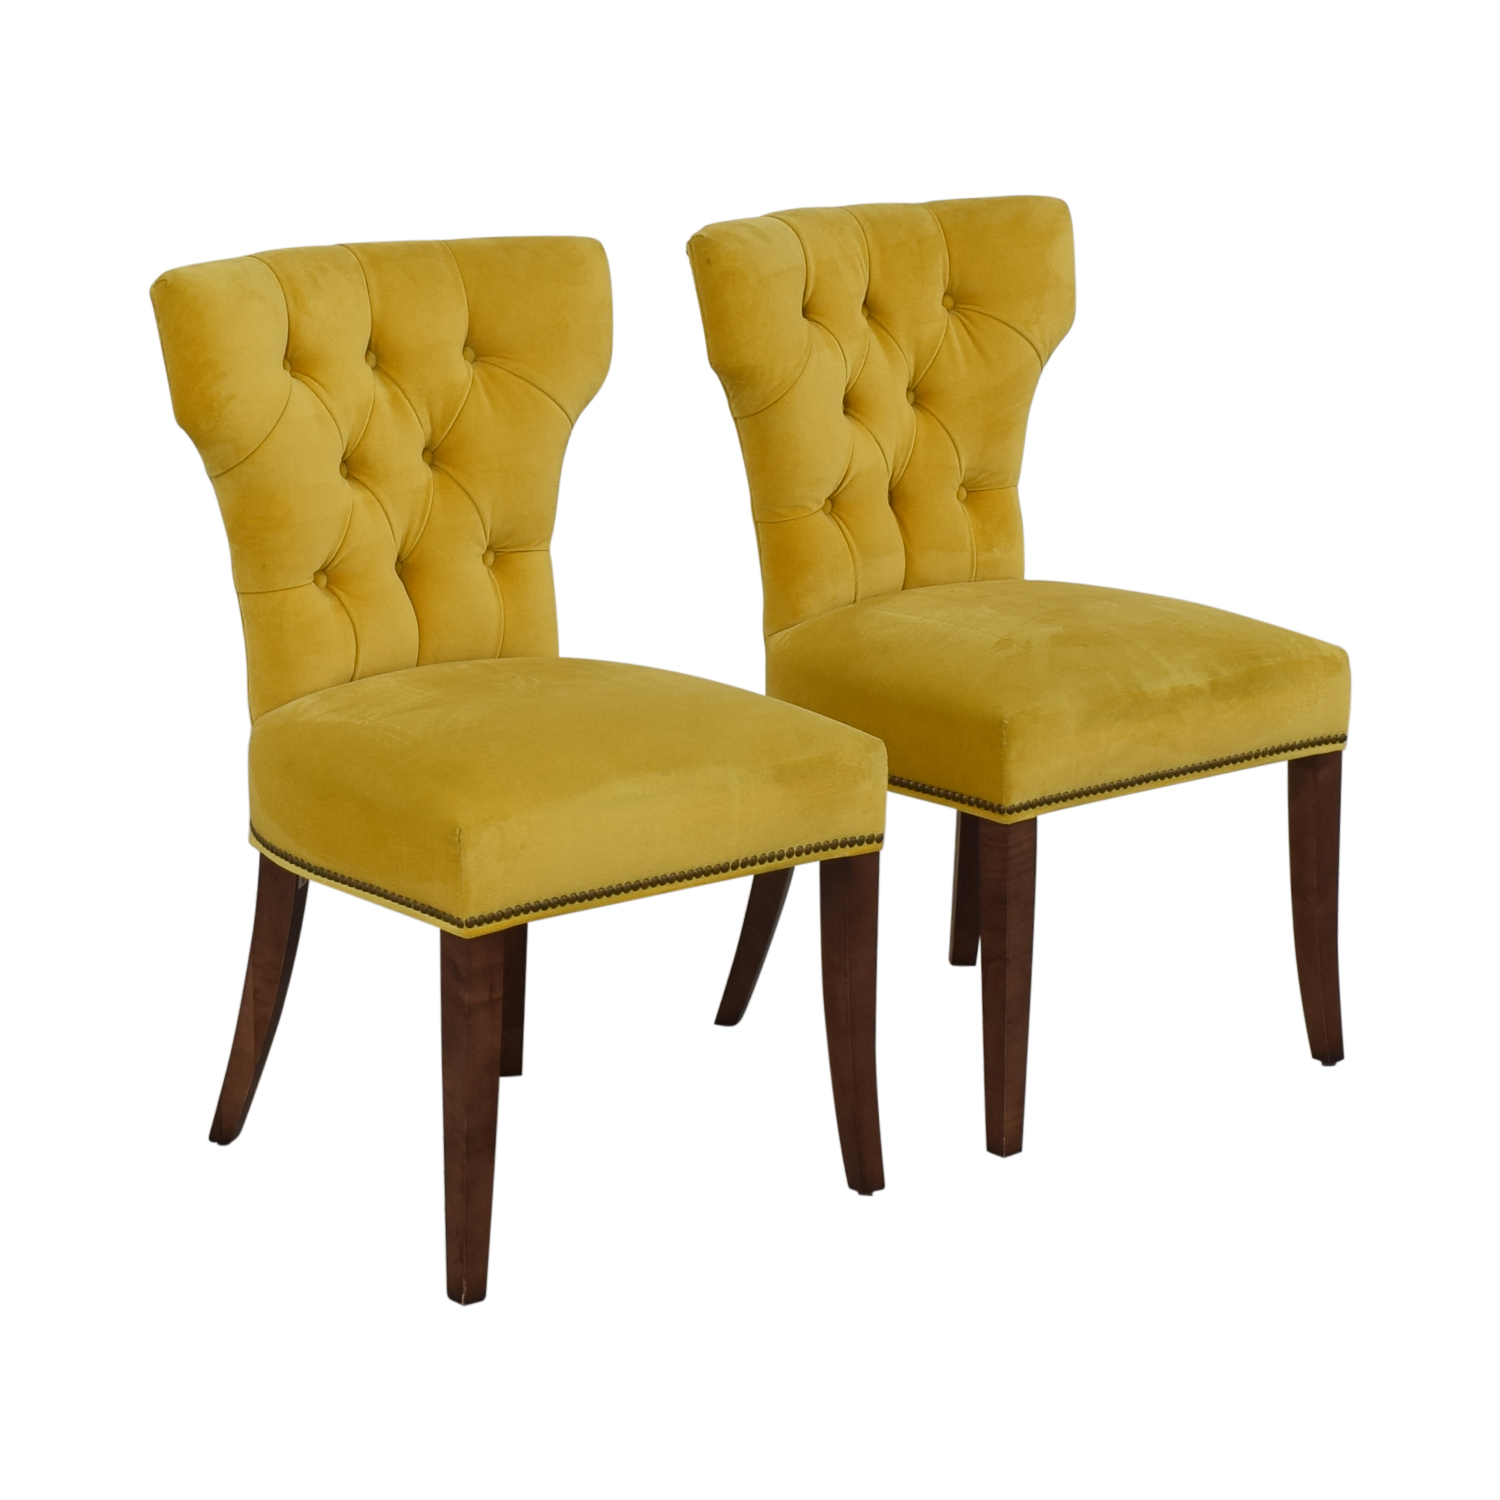 Lillian August Lillian August Farmhouse Yellow Kitchen Chairs for sale